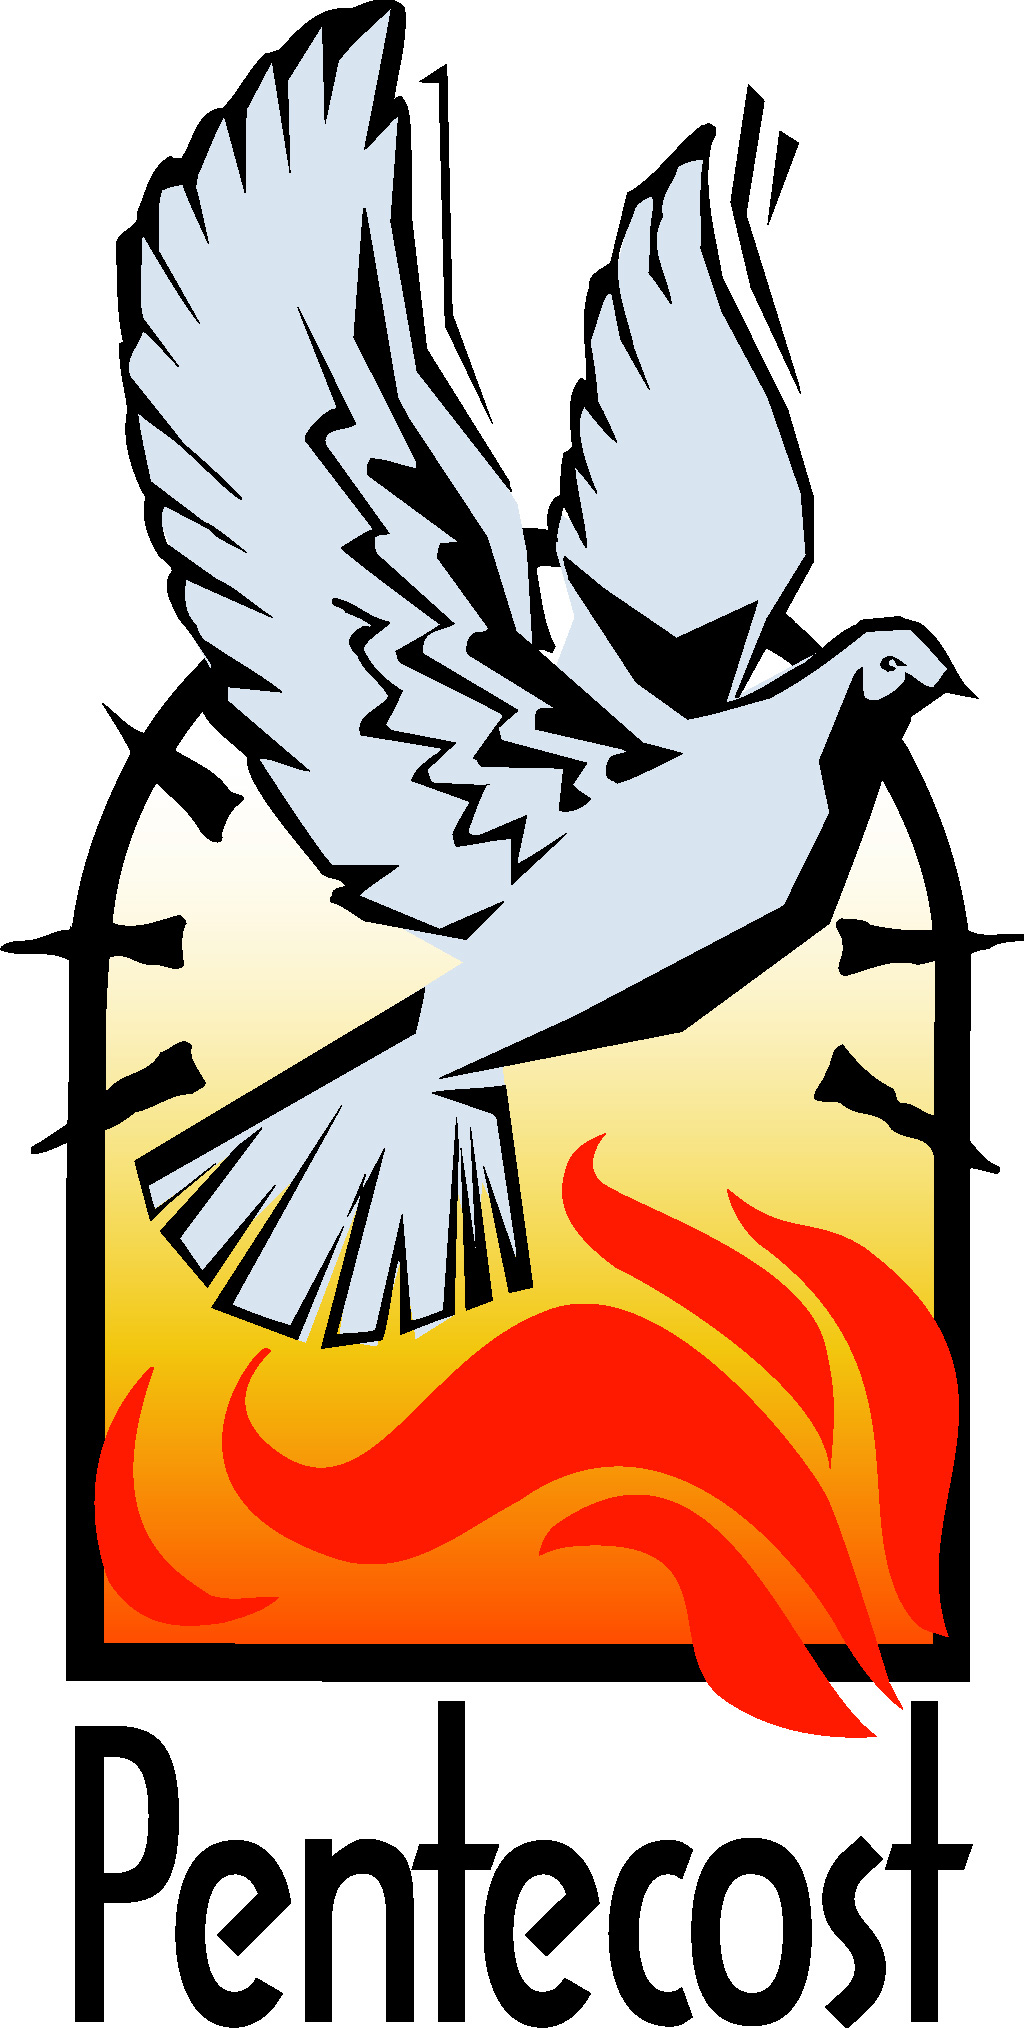 Pentecost clipart. Free cliparts download clip